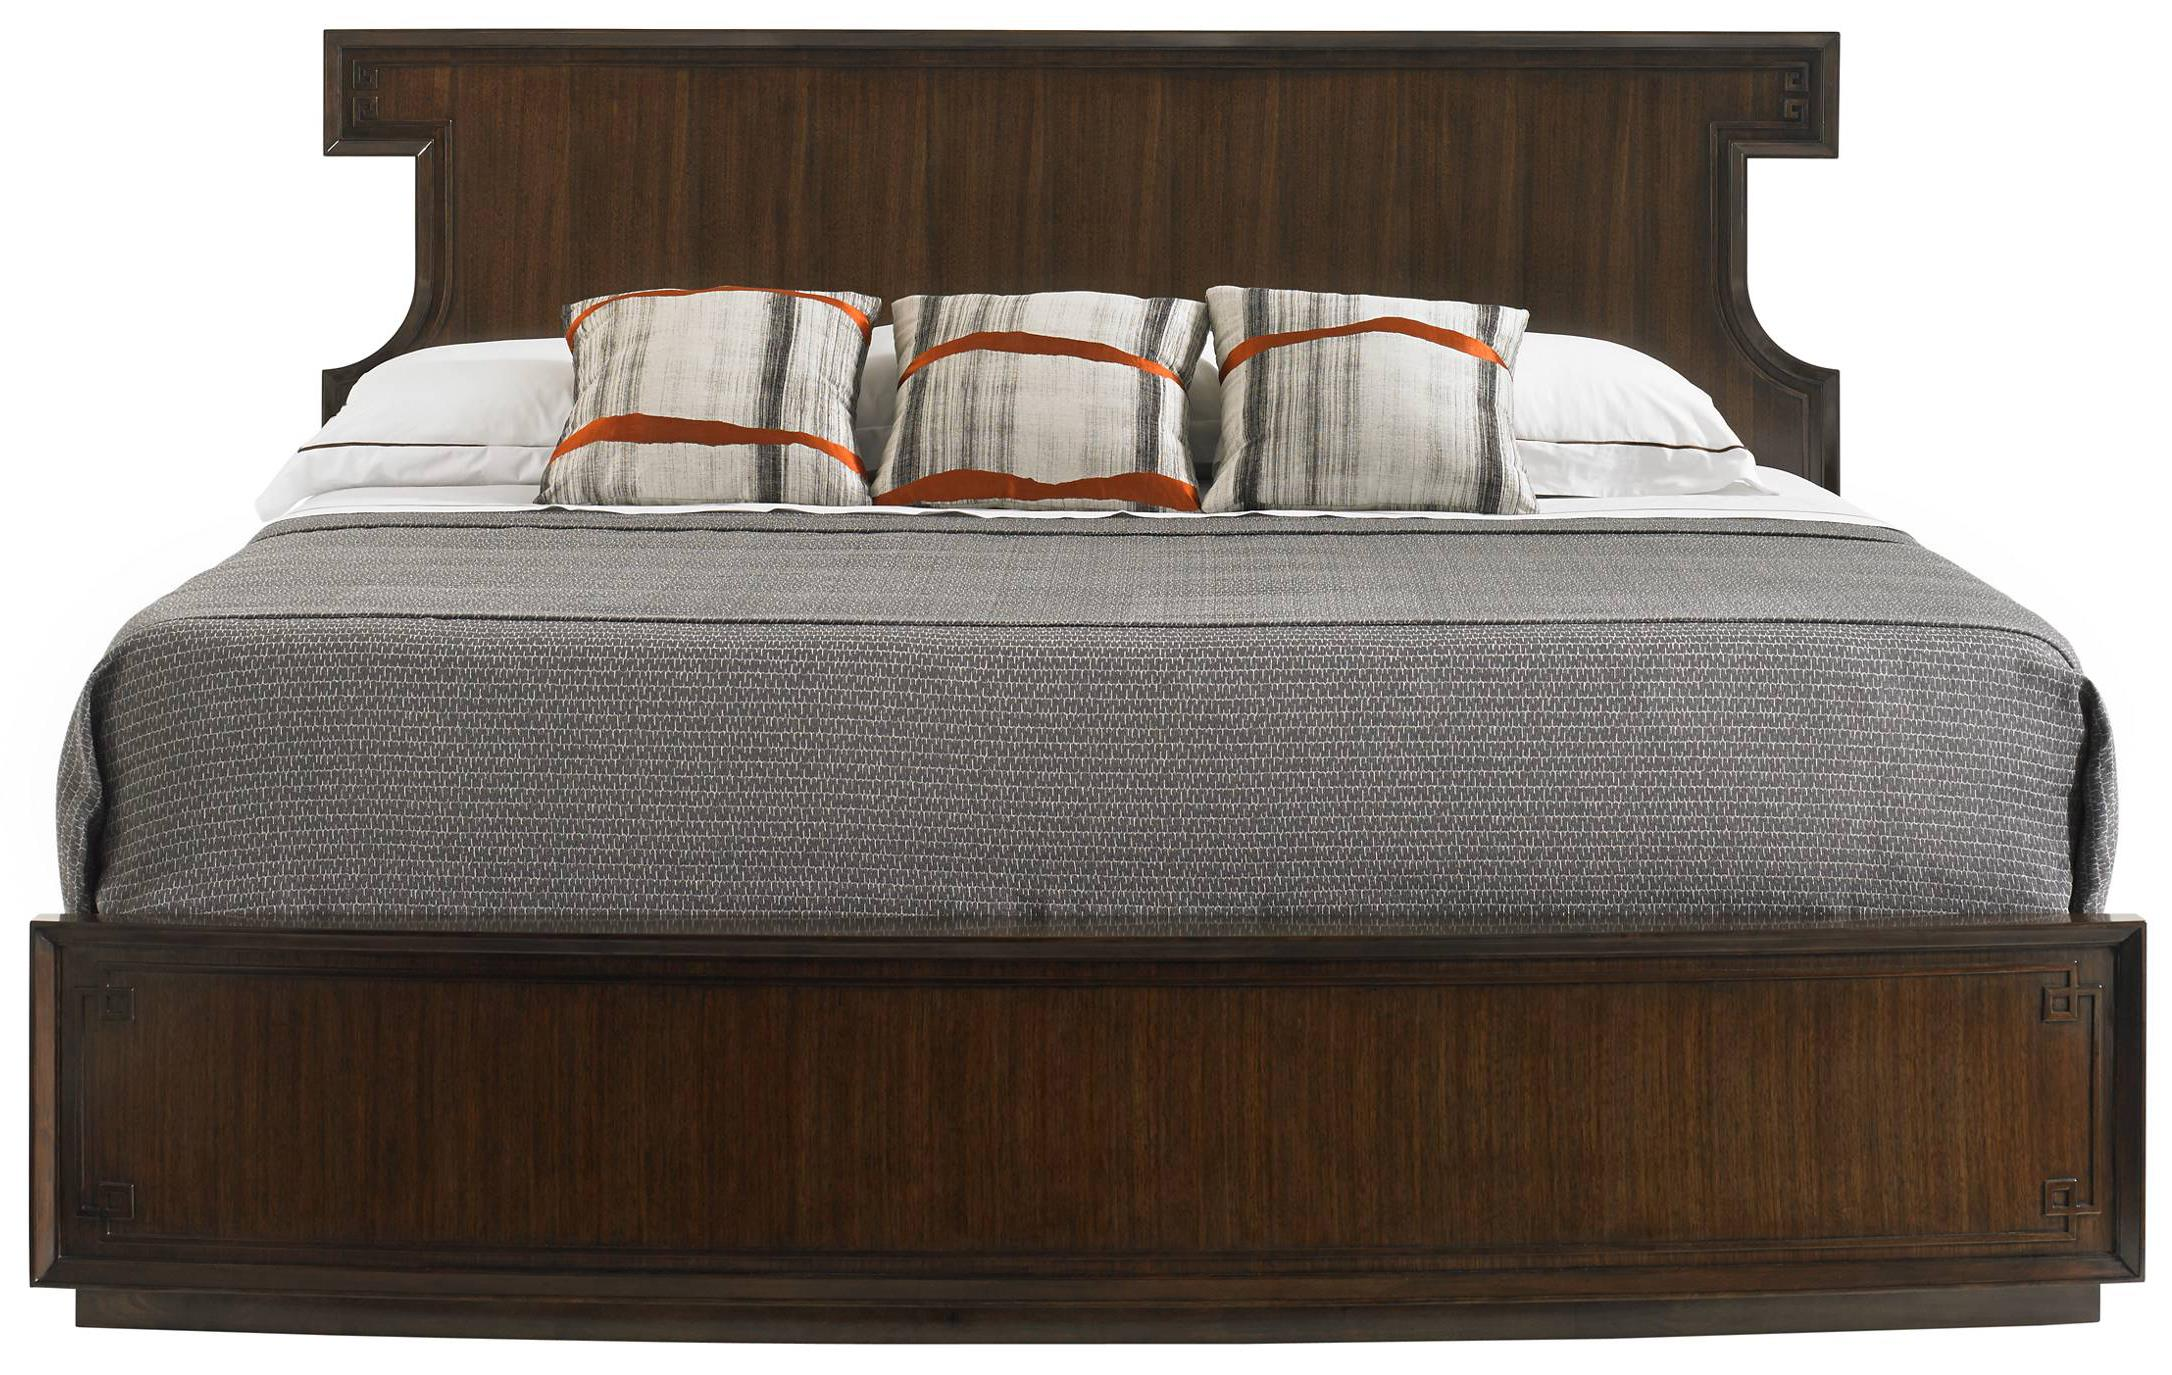 Stanley Furniture Crestaire Queen Southridge Bed - Item Number: 436-13-40